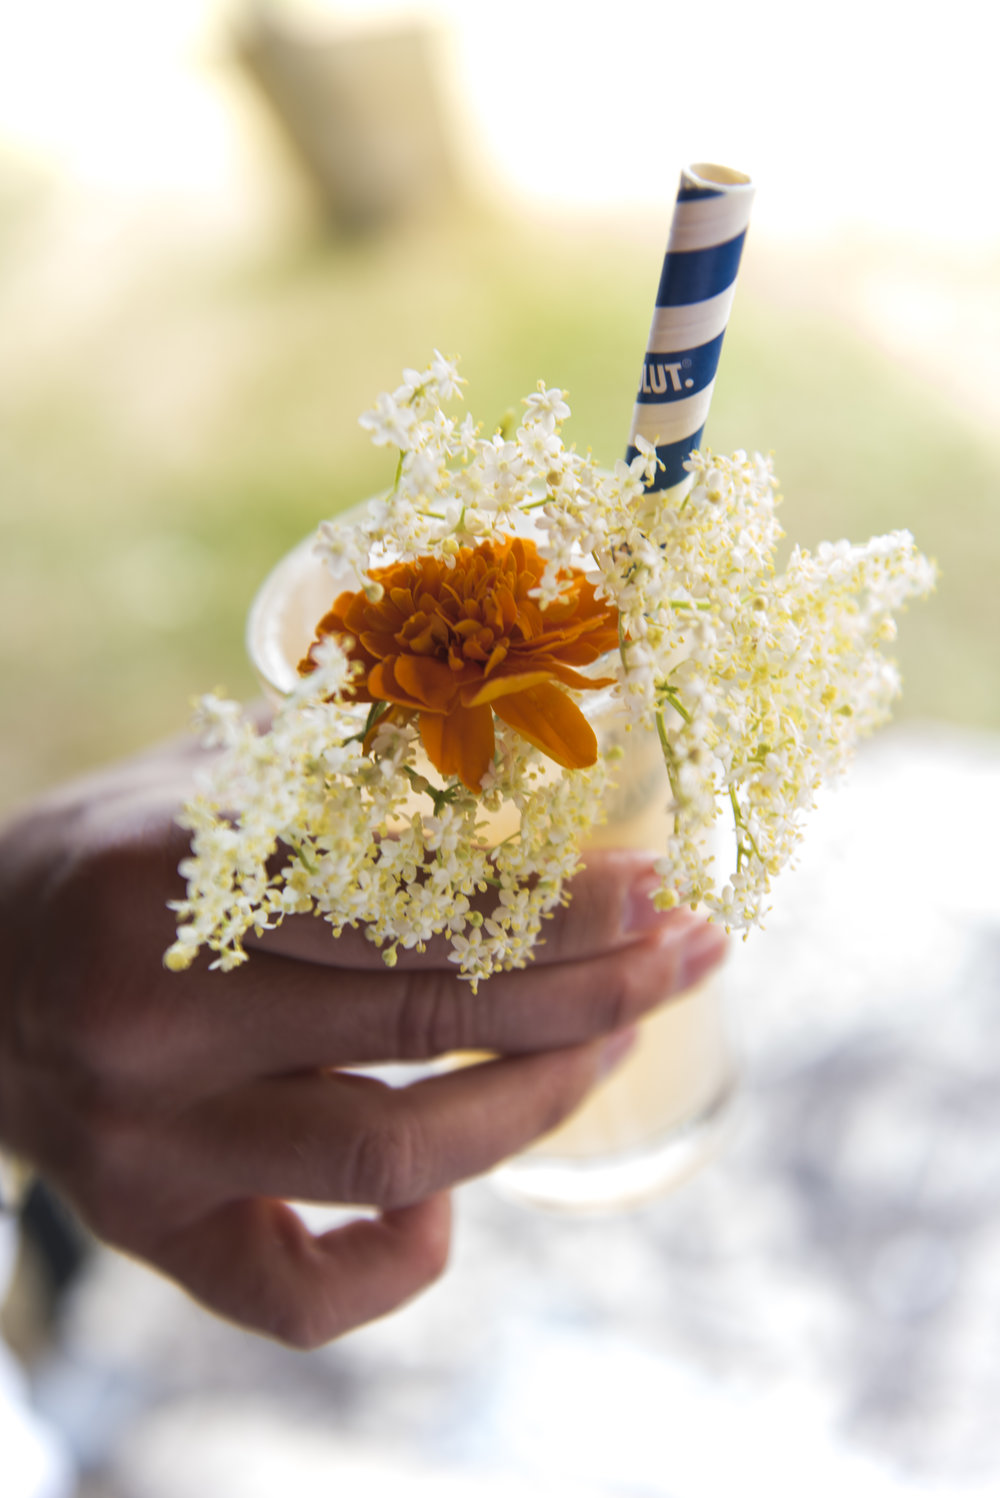 MIDSOMMAR COCKTAIL X ABSOLUT